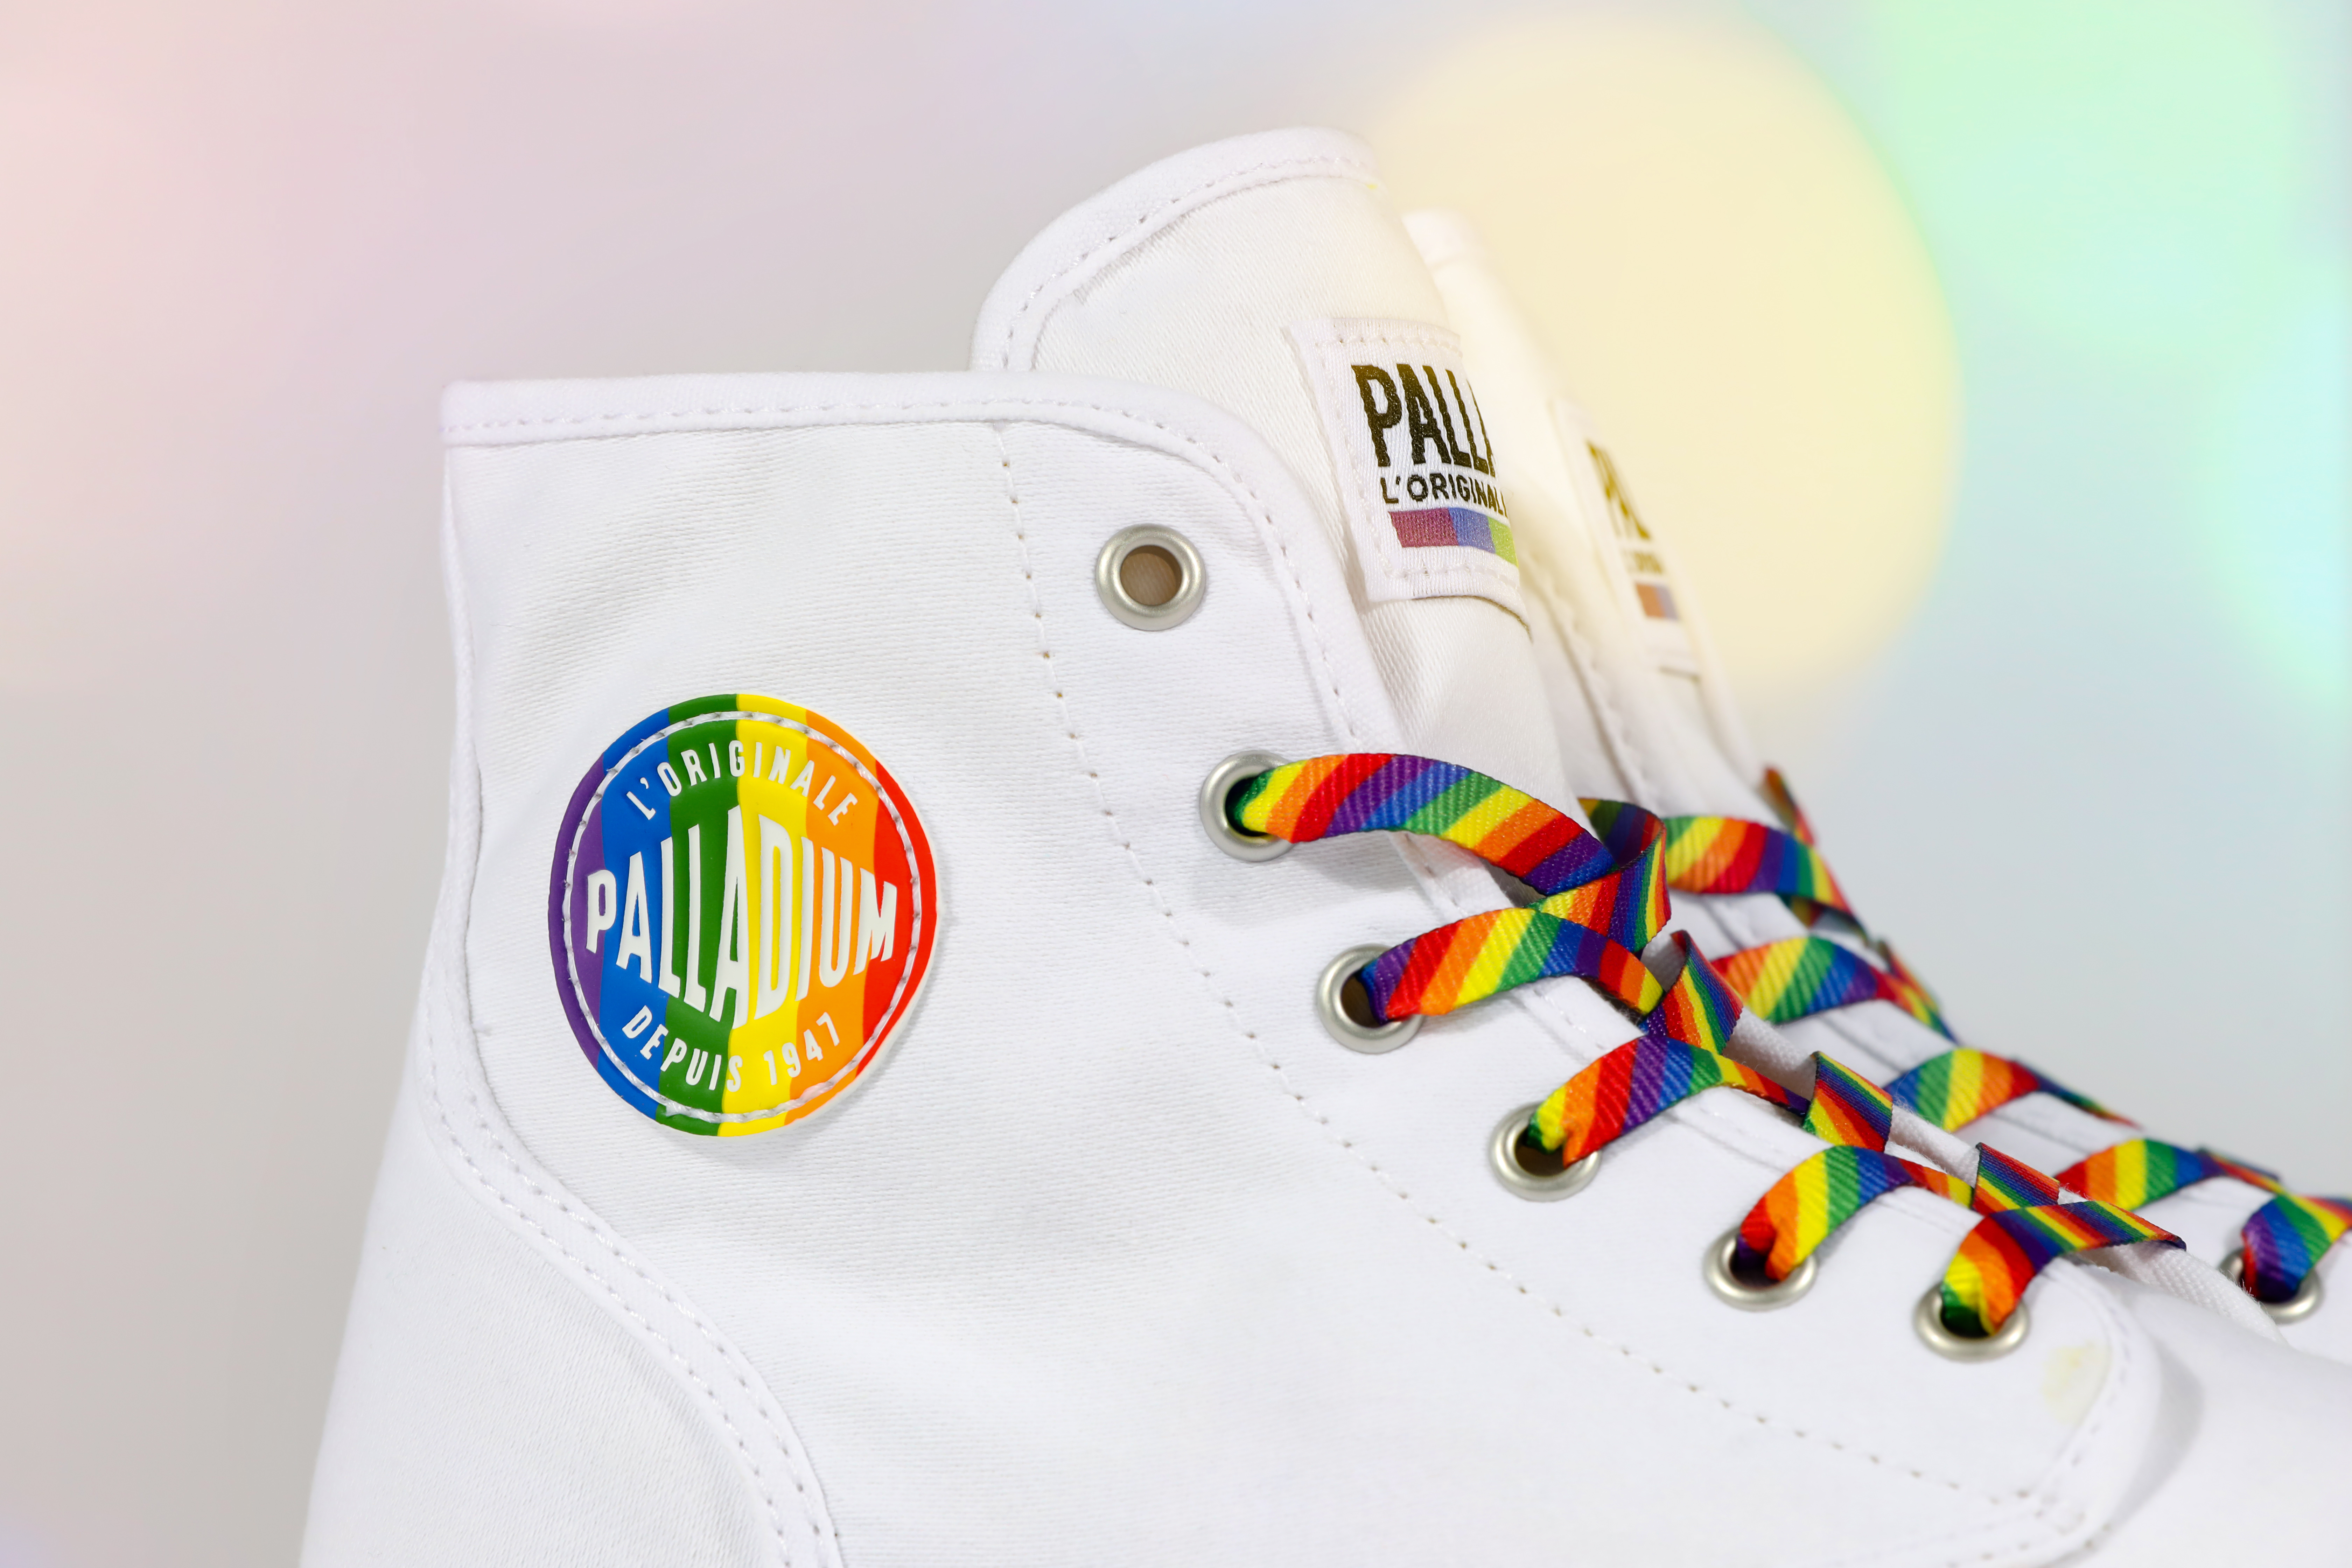 palladiumboots launch their new Pride inspired collection in black and white